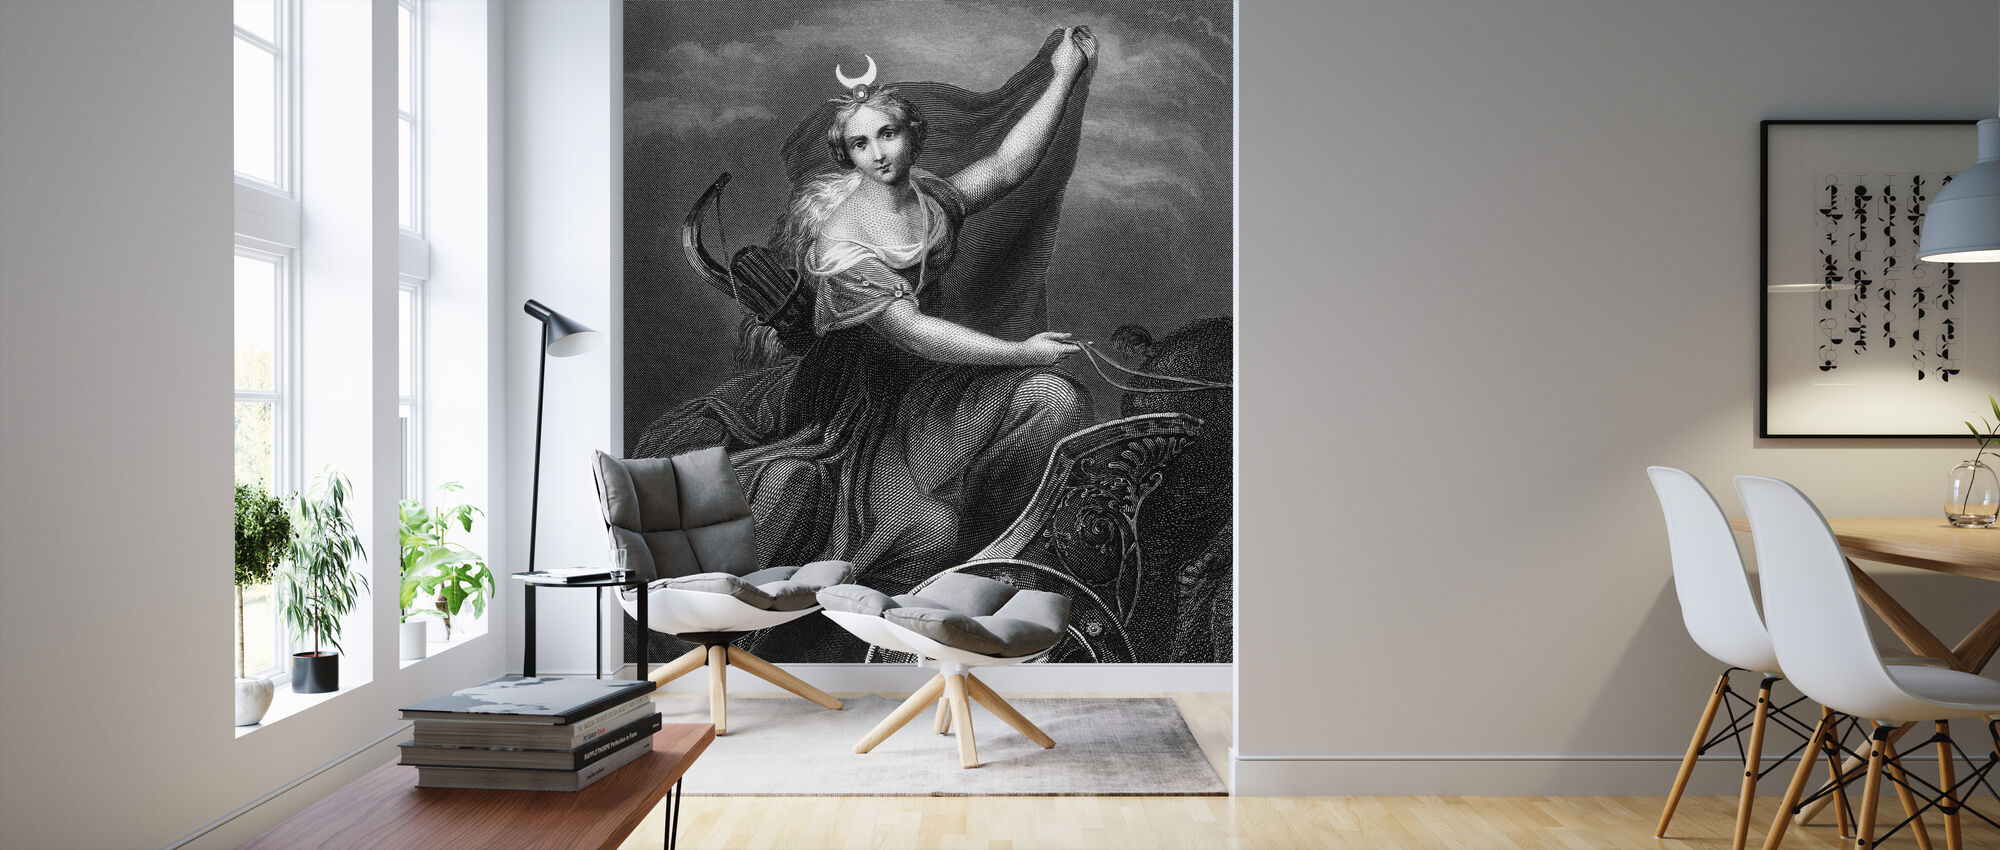 Roman Goddess of the Hunt and Moon - Wallpaper - Living Room